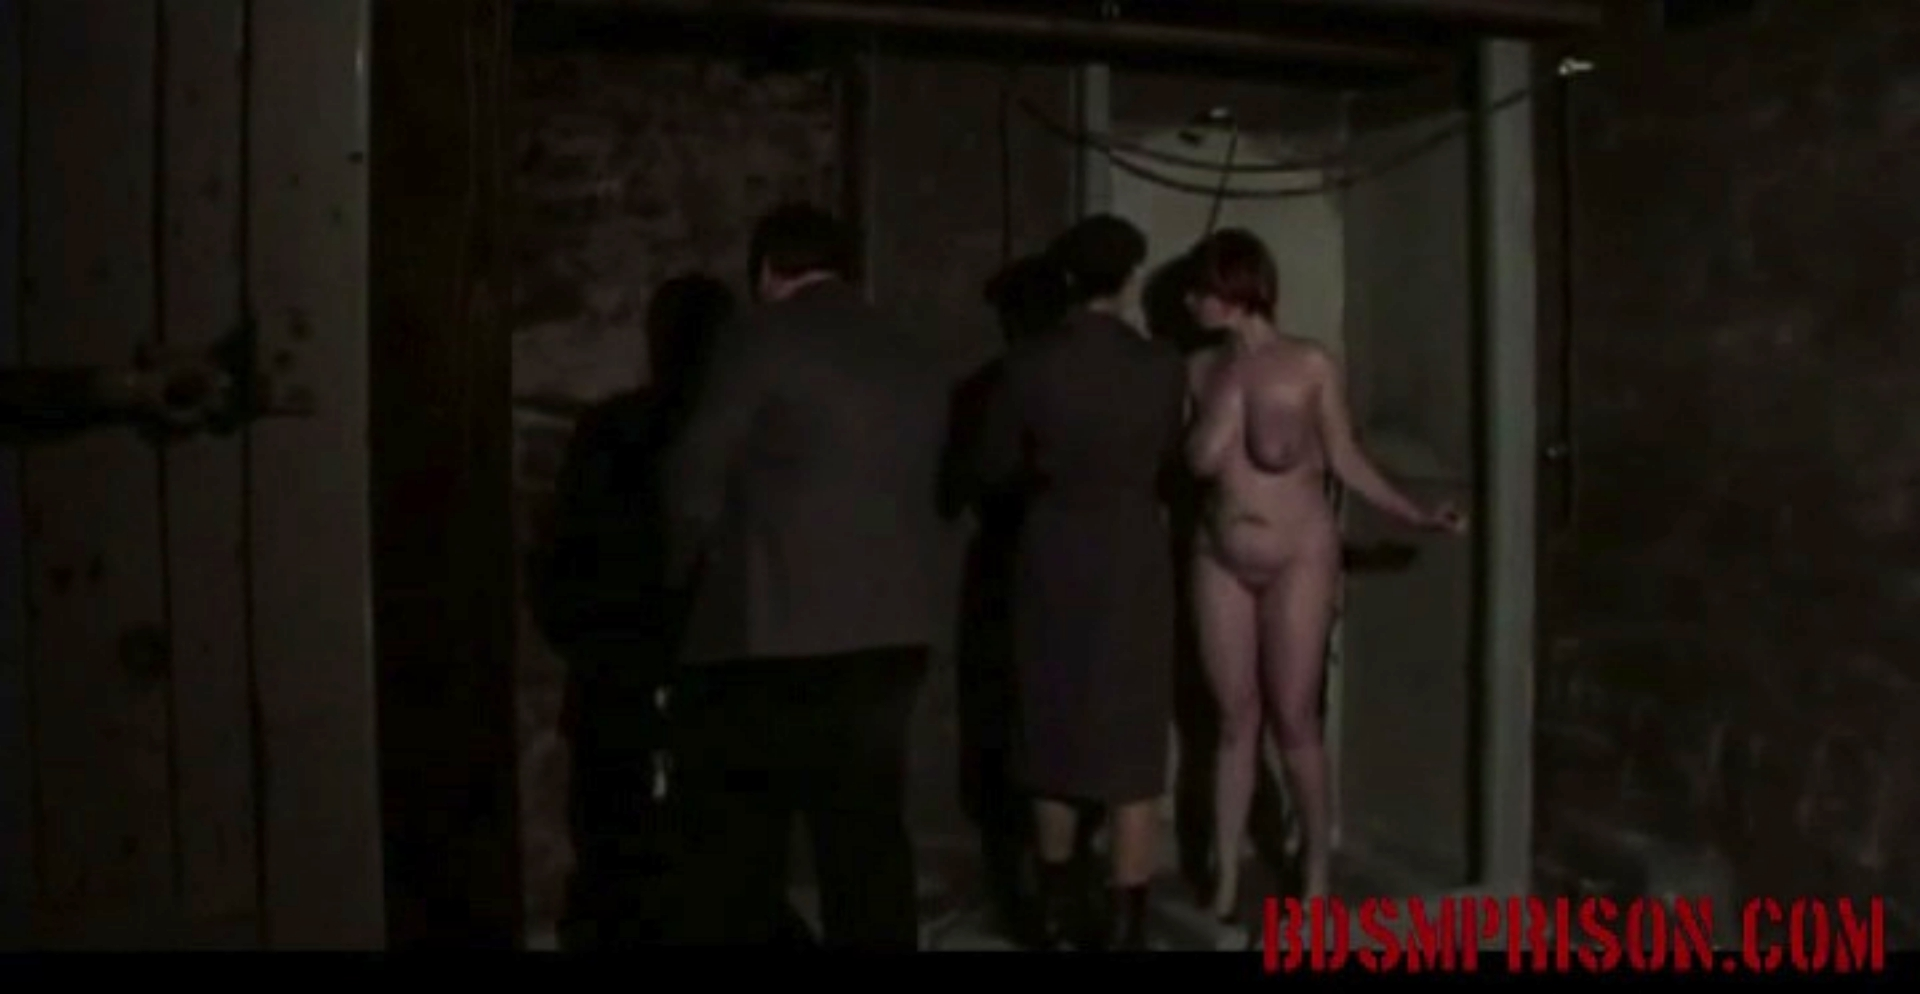 Lori endures domination bondage rough scrub down. Lori was arrested for adultery and imprisoned. Her punishment will be harsh in order to educate her to be a decent woman. A couple prison guards will take on the task of her sex slave training. She has to be washed first.